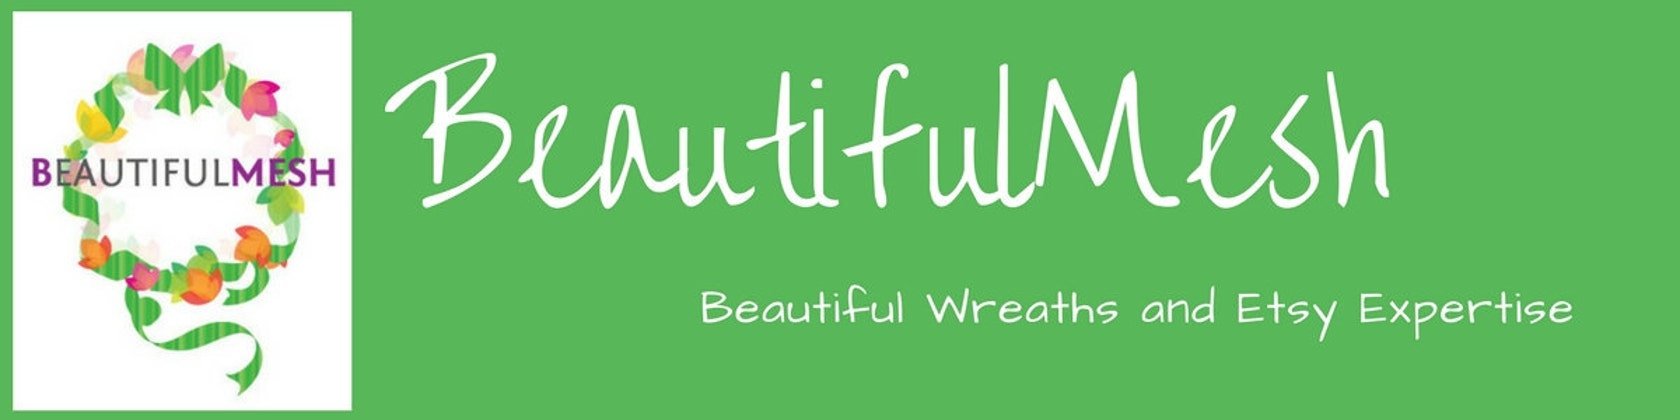 Beautiful wreaths and etsy expertise by beautifulmesh on etsy fandeluxe Image collections